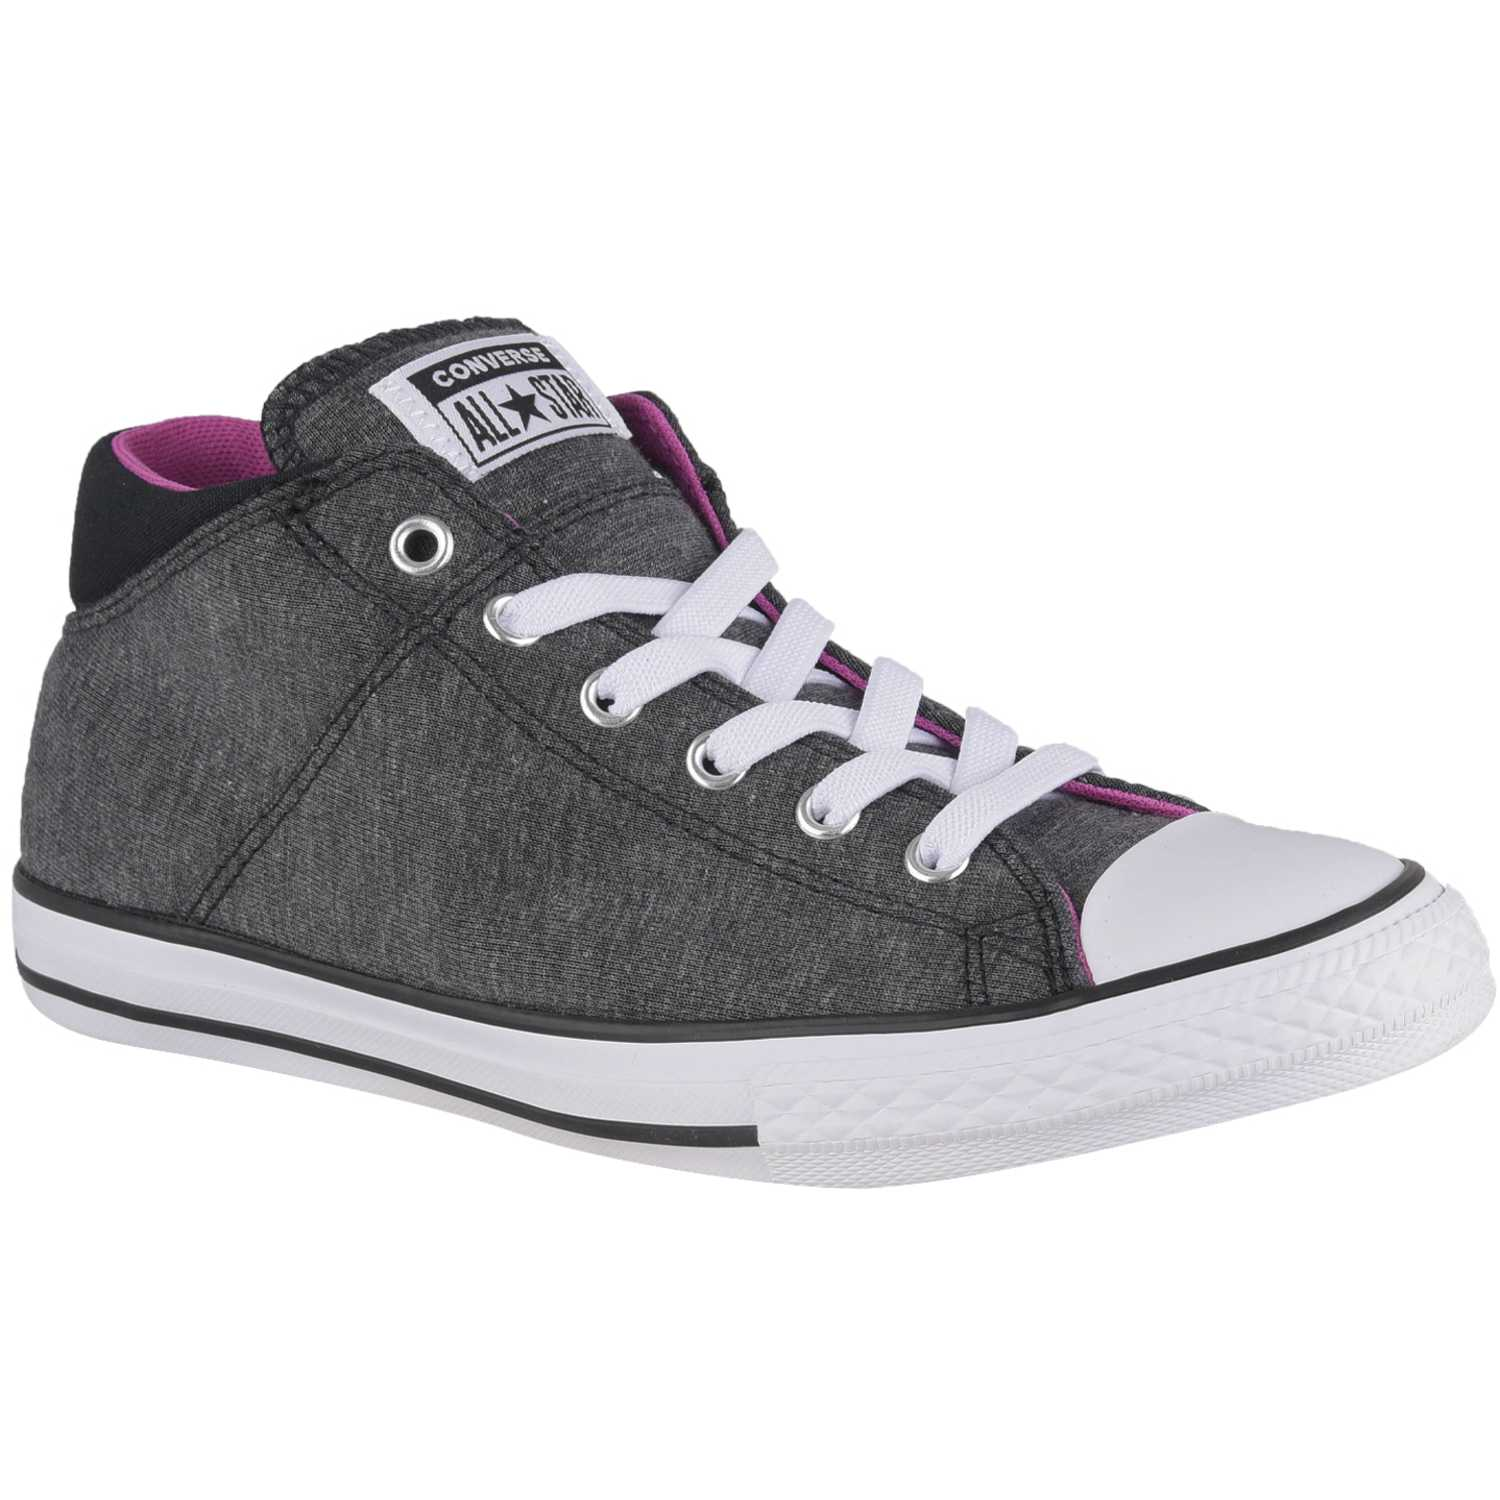 Converse chuck taylor all star madison court hero mid Negro / fucsia Walking